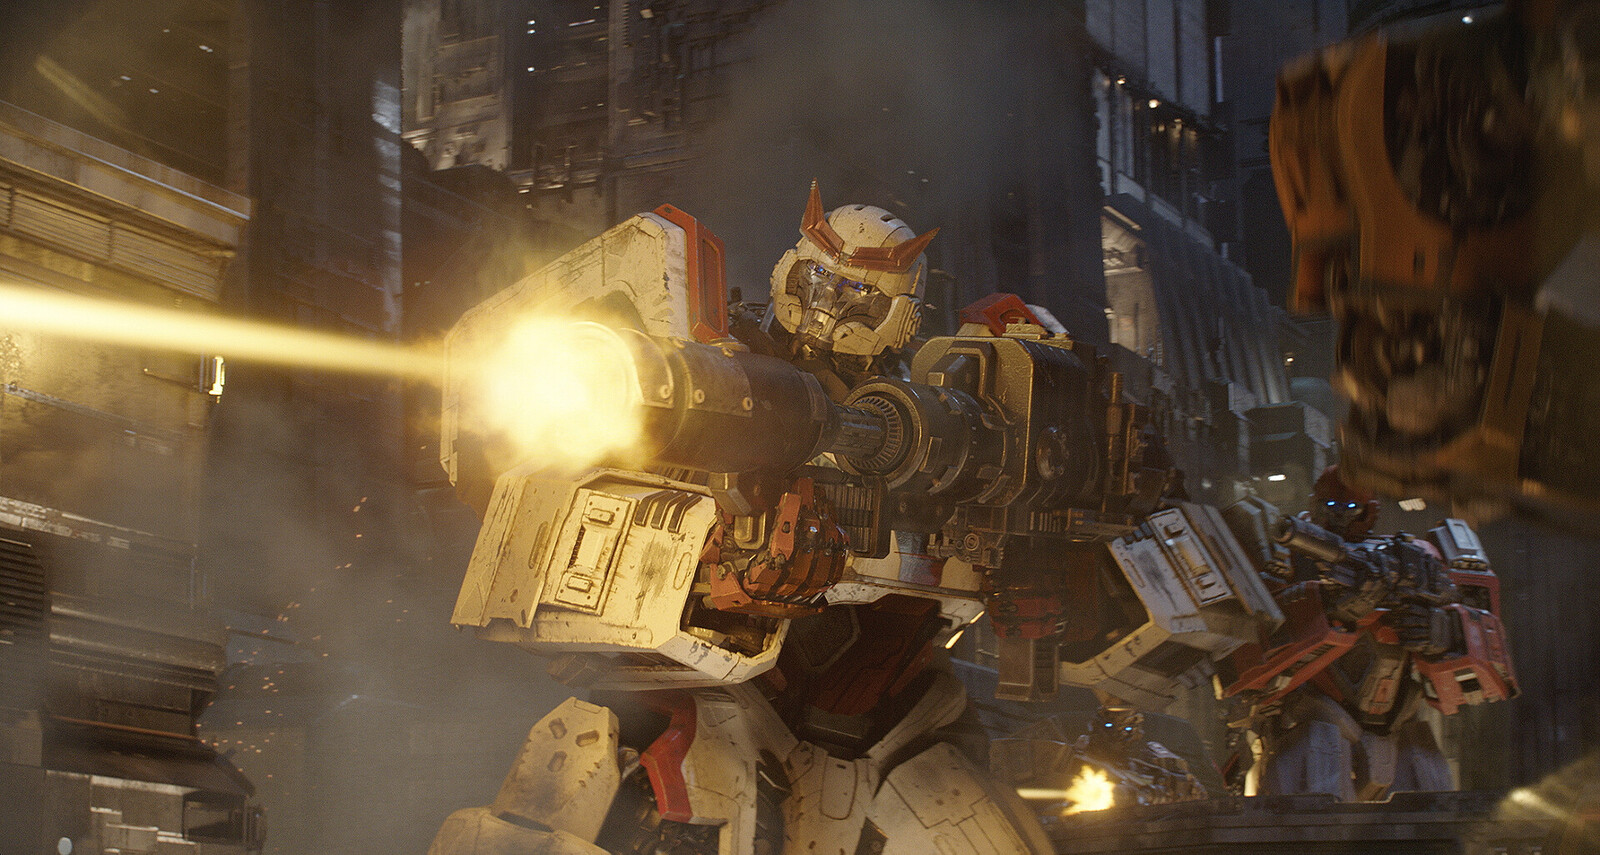 Final movie frame (Ironhide can be seen in the back)